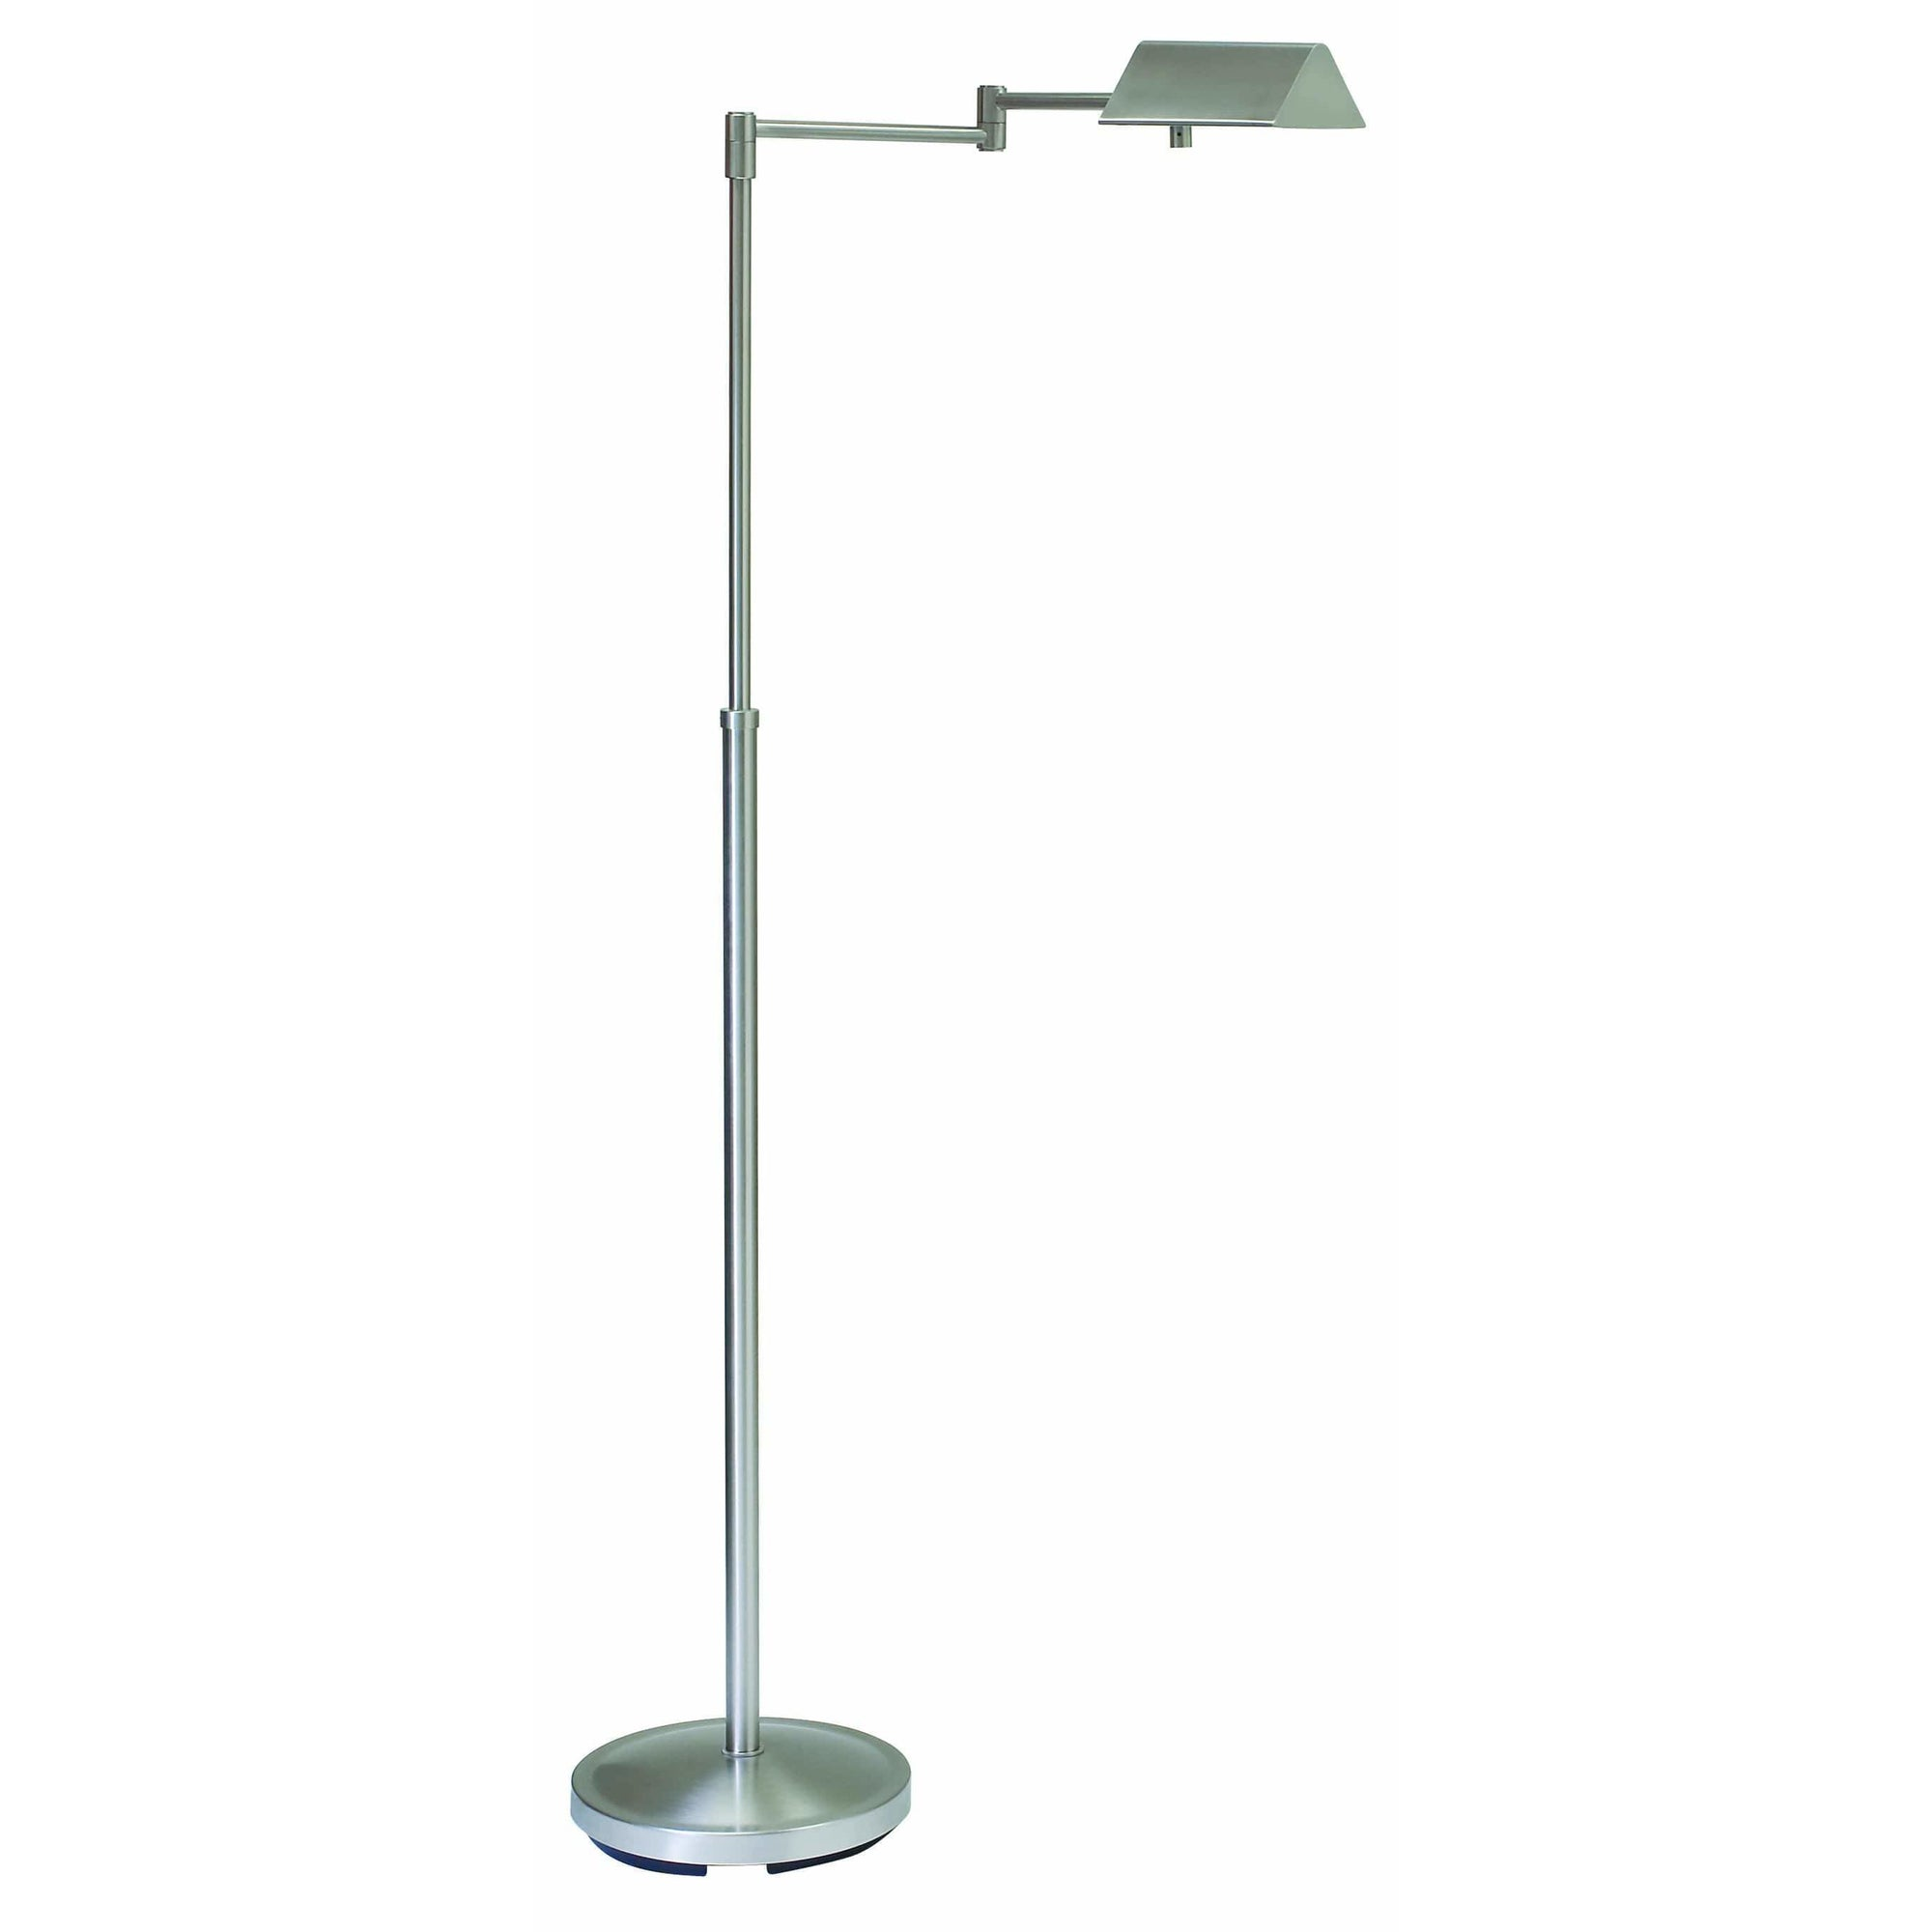 House Of Troy Floor Lamps Pinnacle Adjustable Halogen Floor Lamp by House Of Troy PIN400-SN